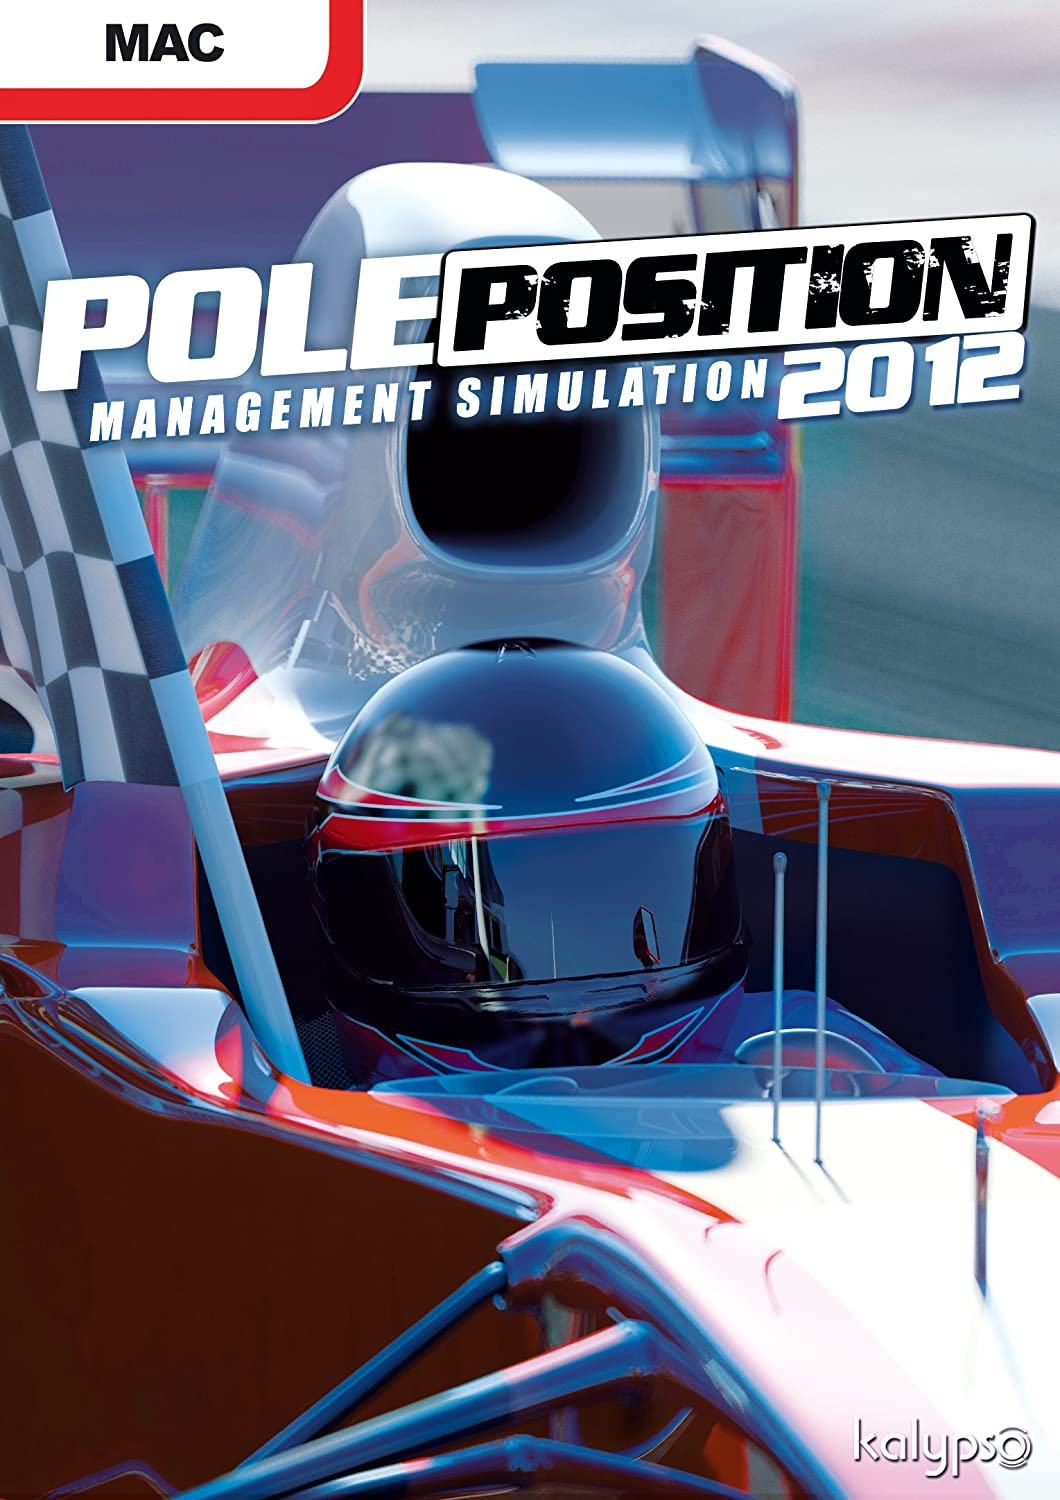 pole position 2012 mac download